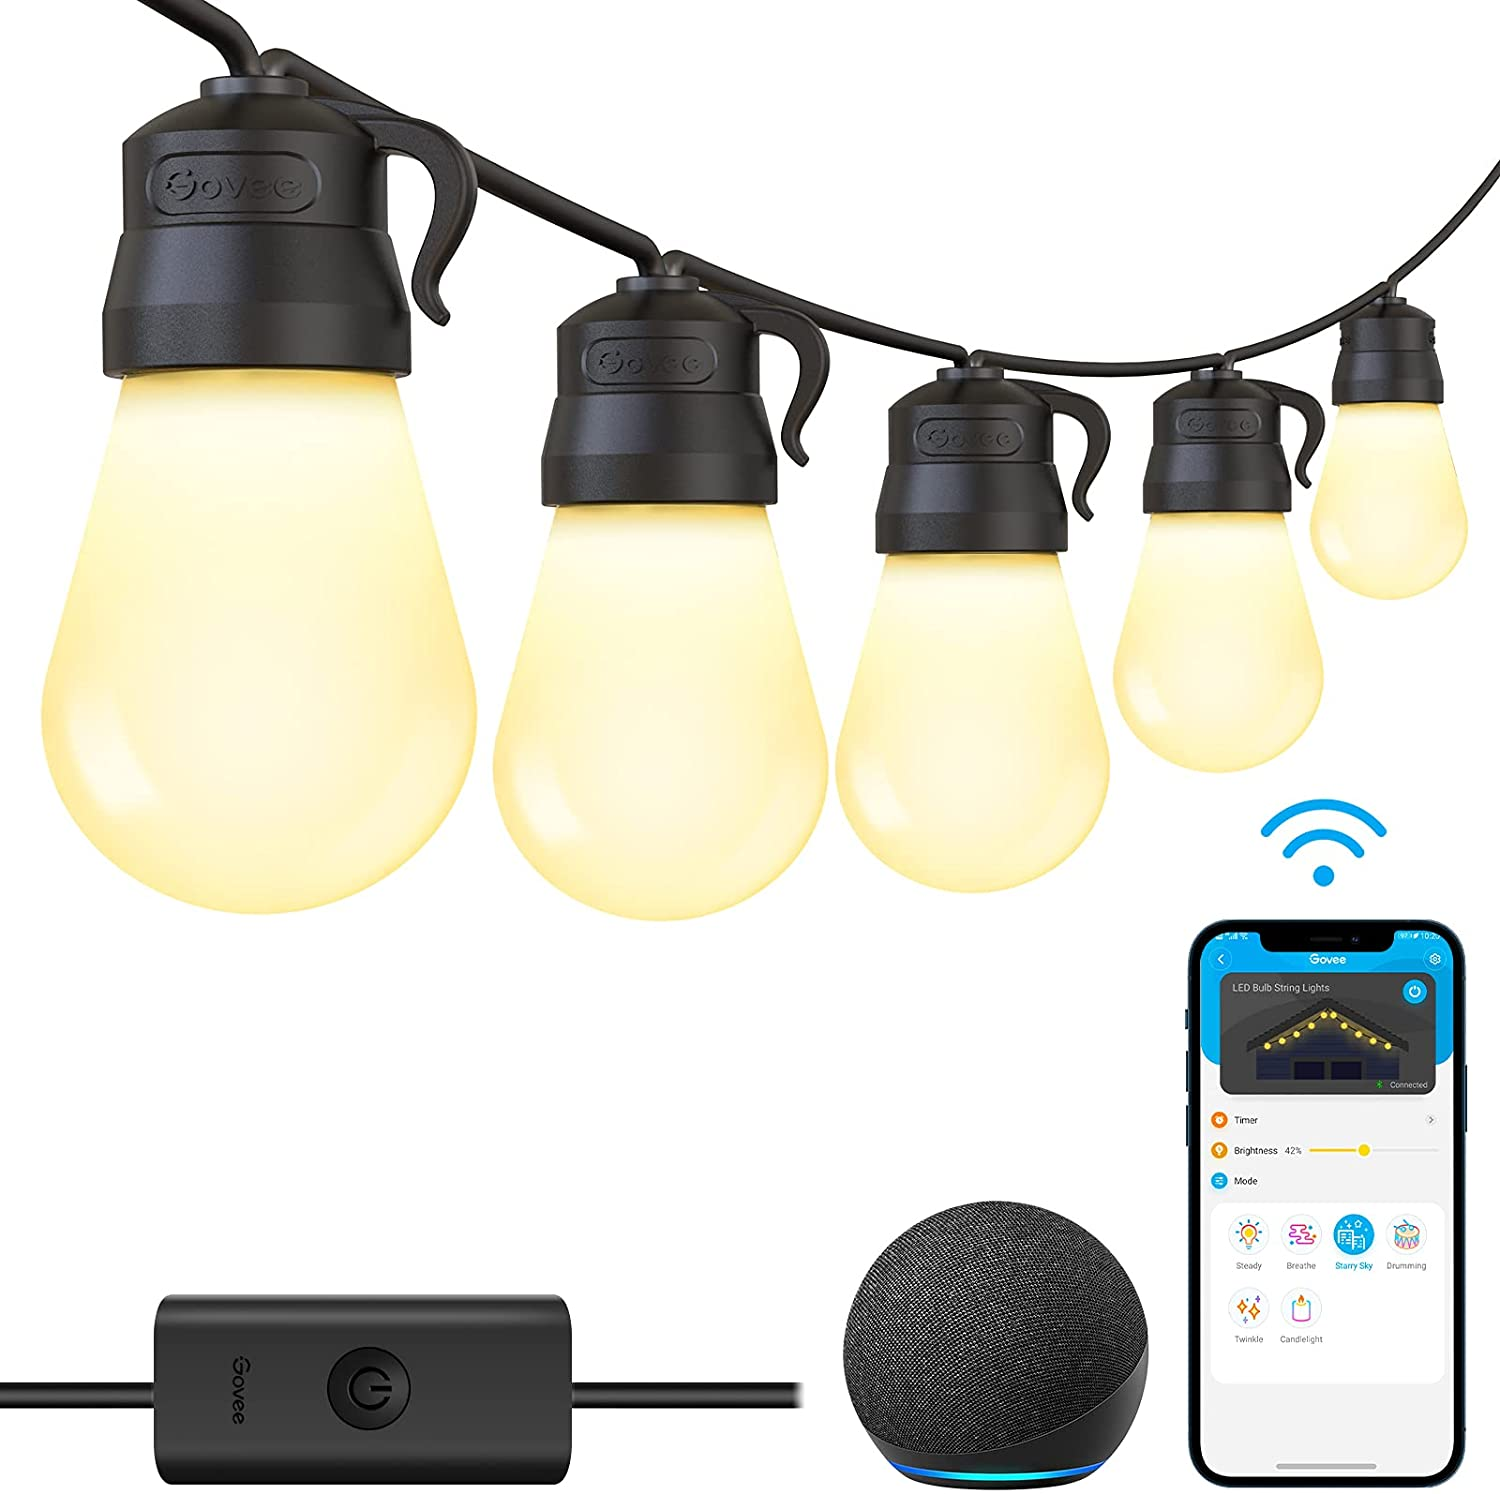 Govee 48ft Smart Wi-Fi Outdoor String Lights